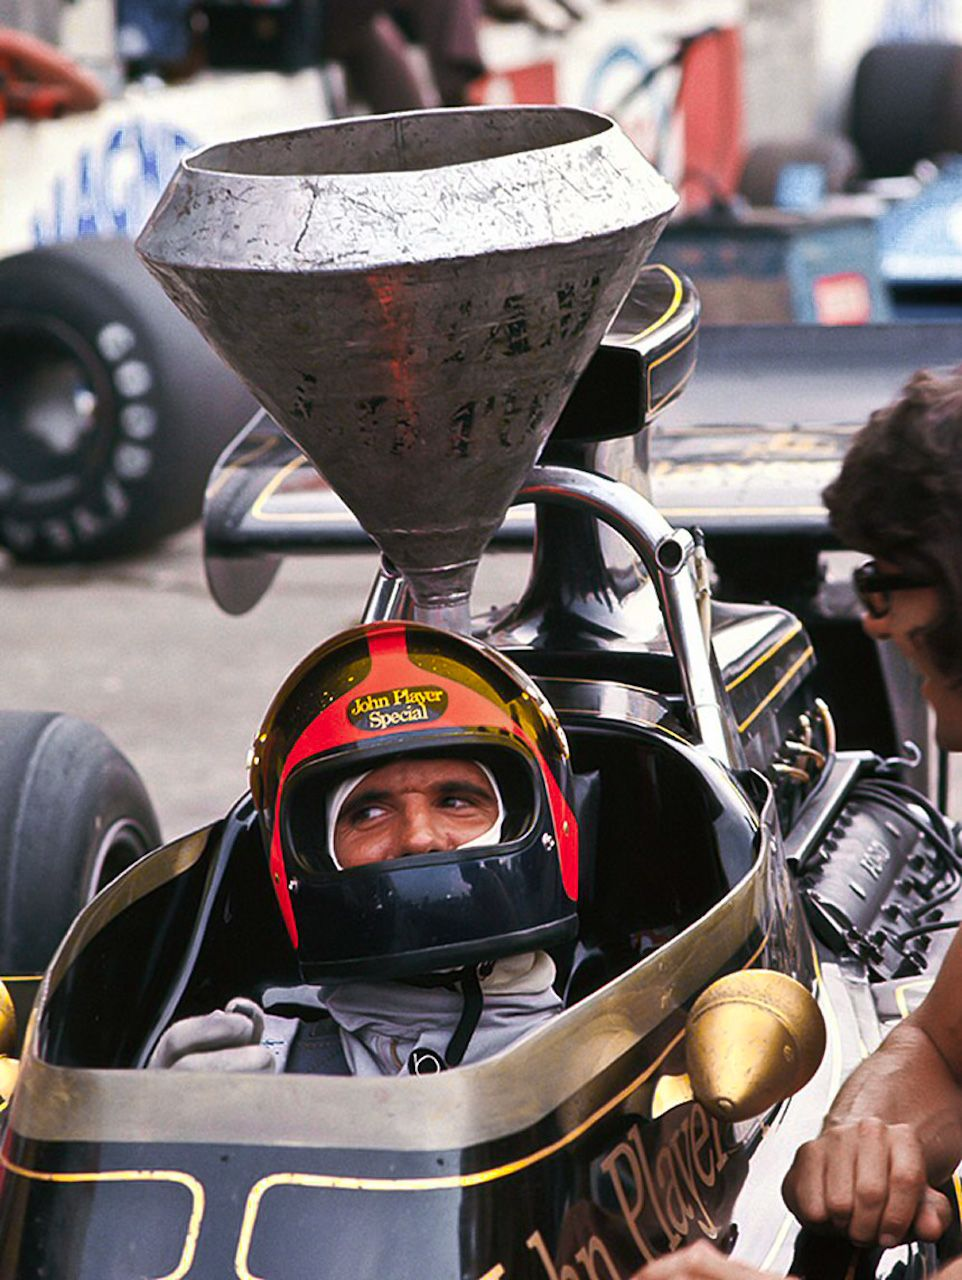 1972 Italian GP Lotus 72D Emerson Fittipaldi